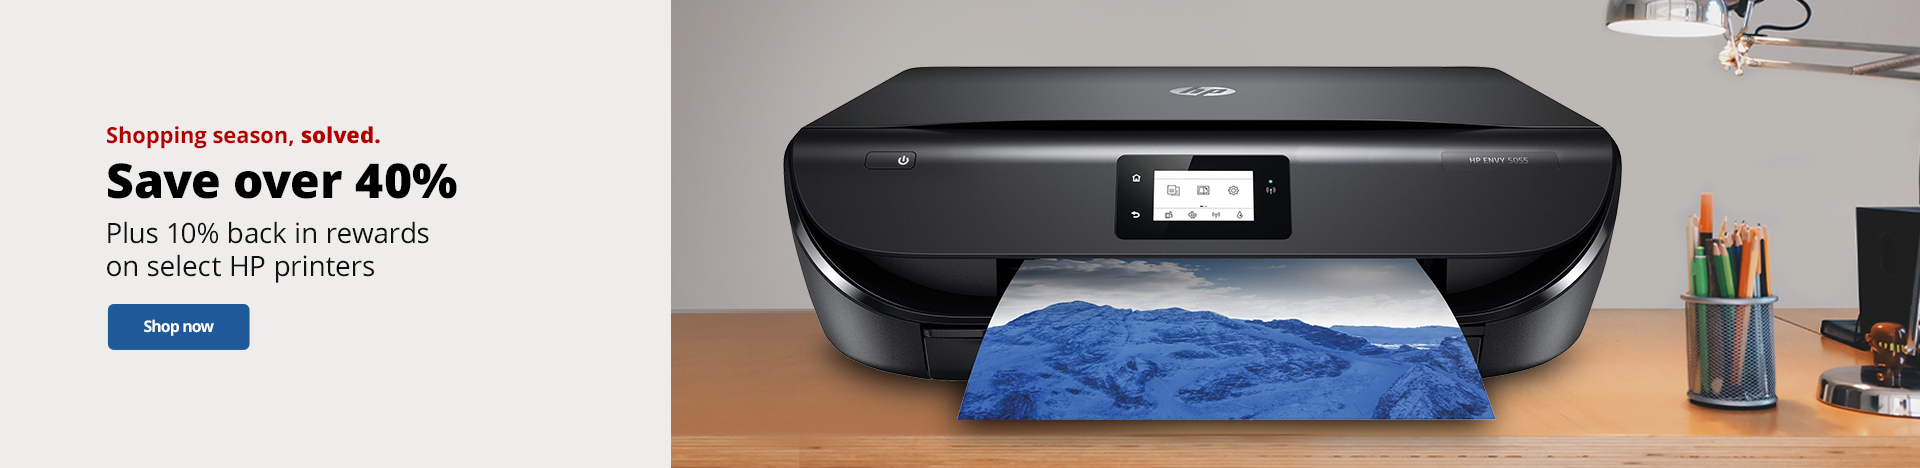 Save over 40% PLUS 10% Back In Rewards on select HP Printers